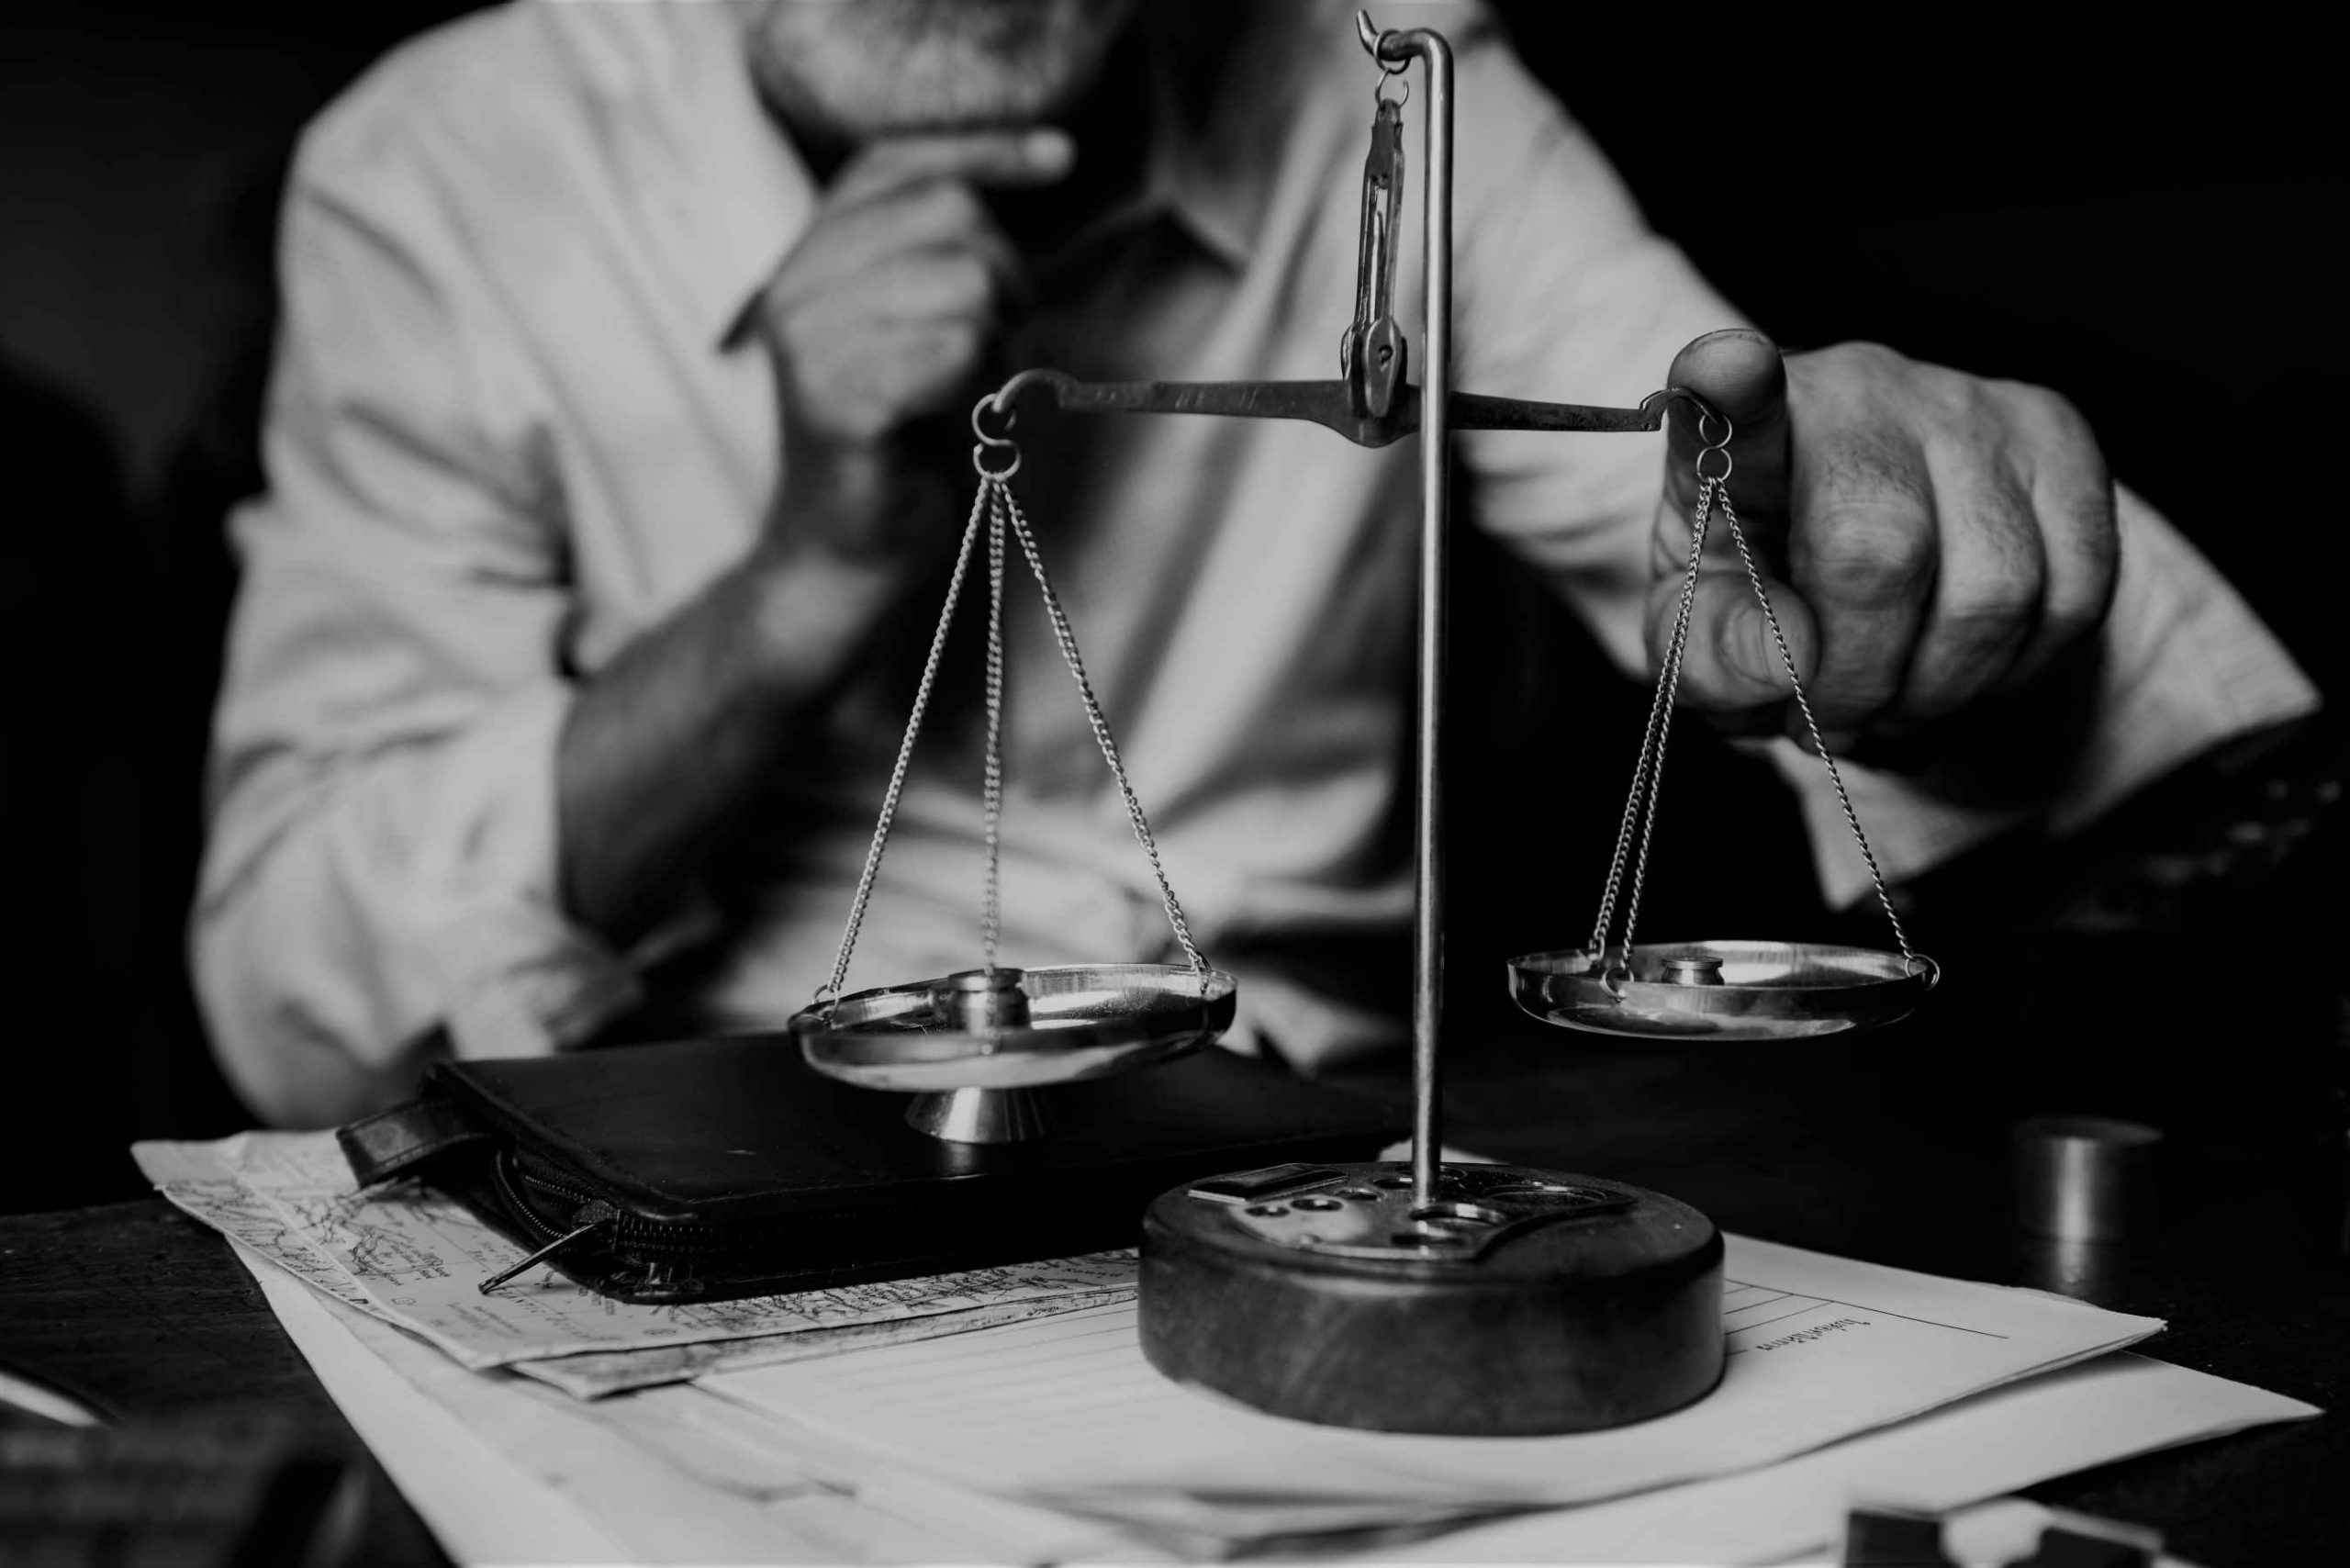 justice scales_social sector law_rawpixel